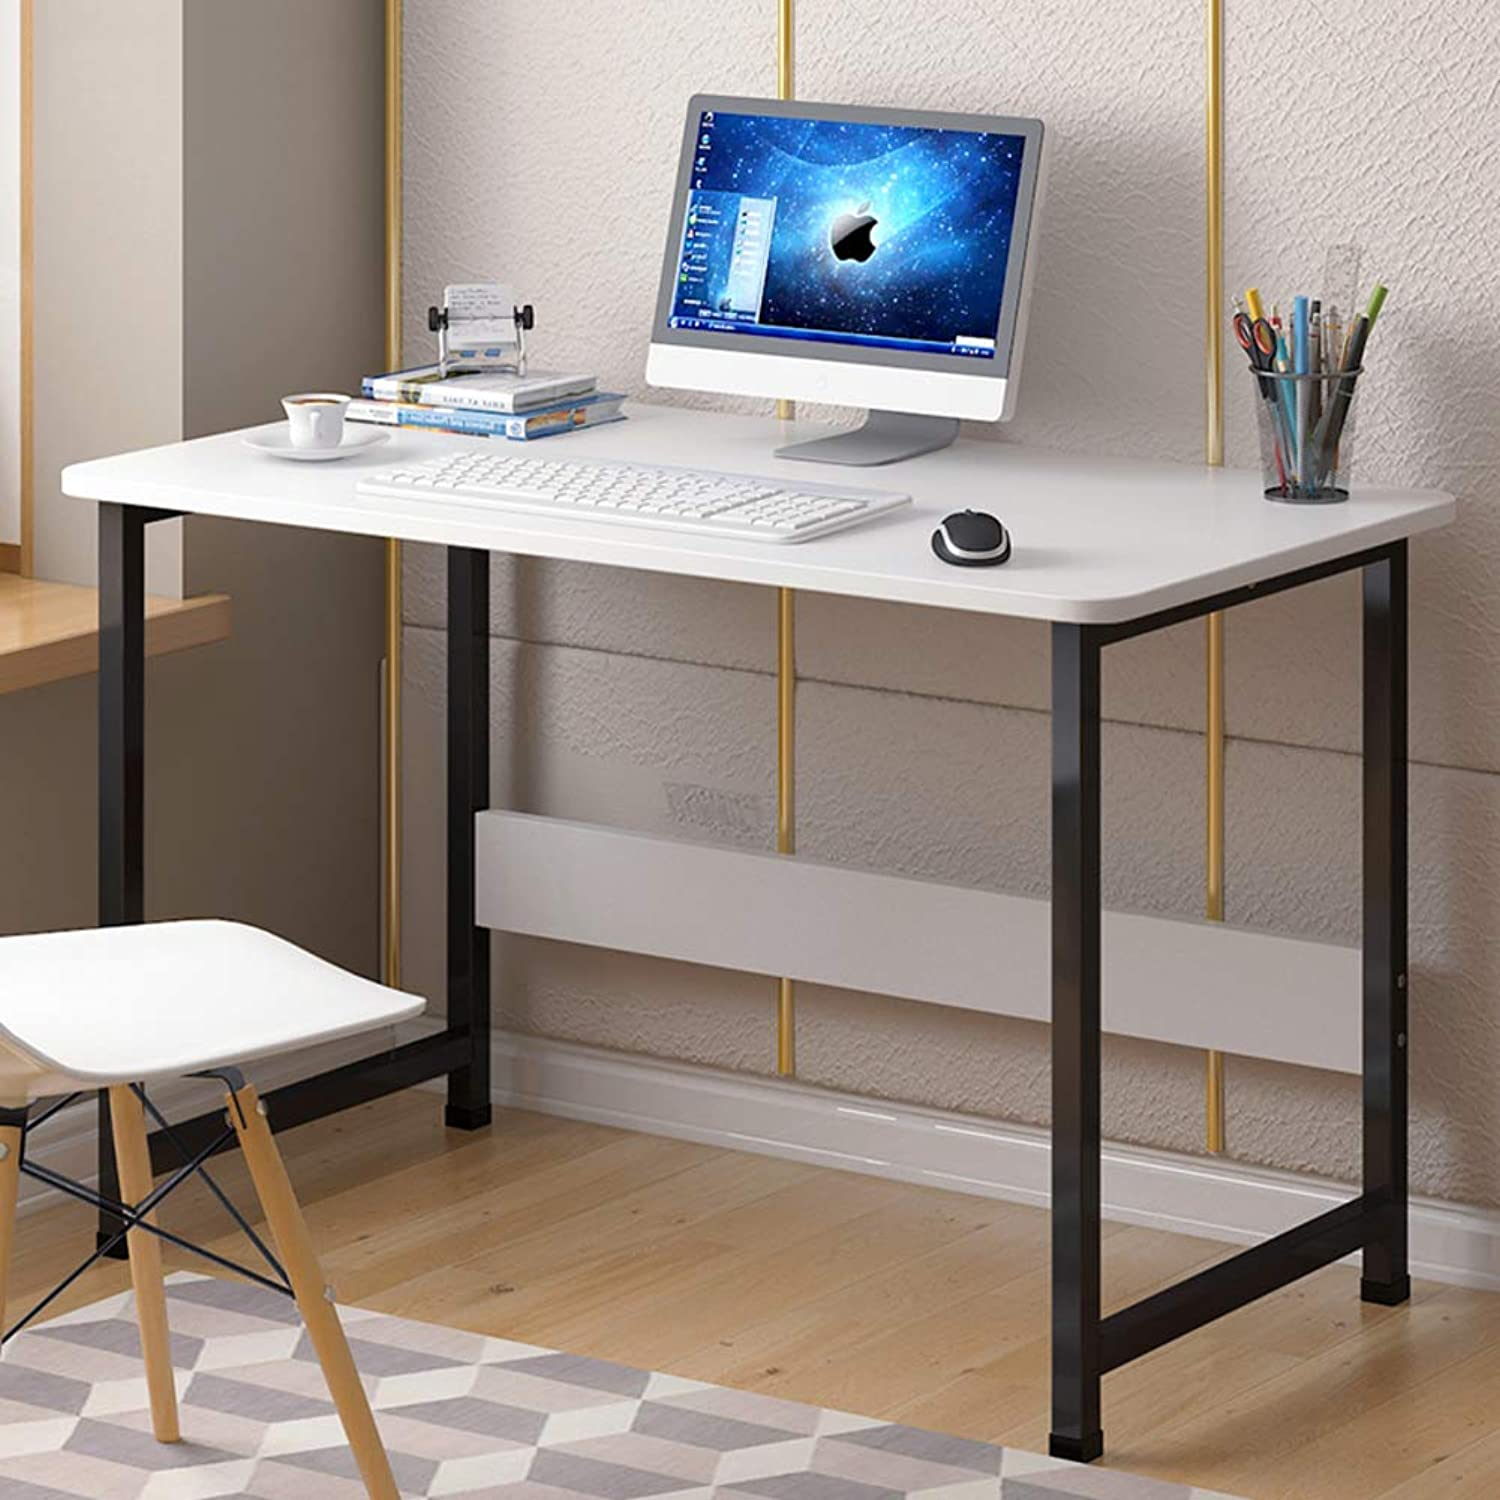 Simplistic Writing Desk Computer Desk, Compact Metal Frame Workstation with Shelf, Computer Table for Home Office Easy Assembly-O 80x40x73cm(31x16x29inch)